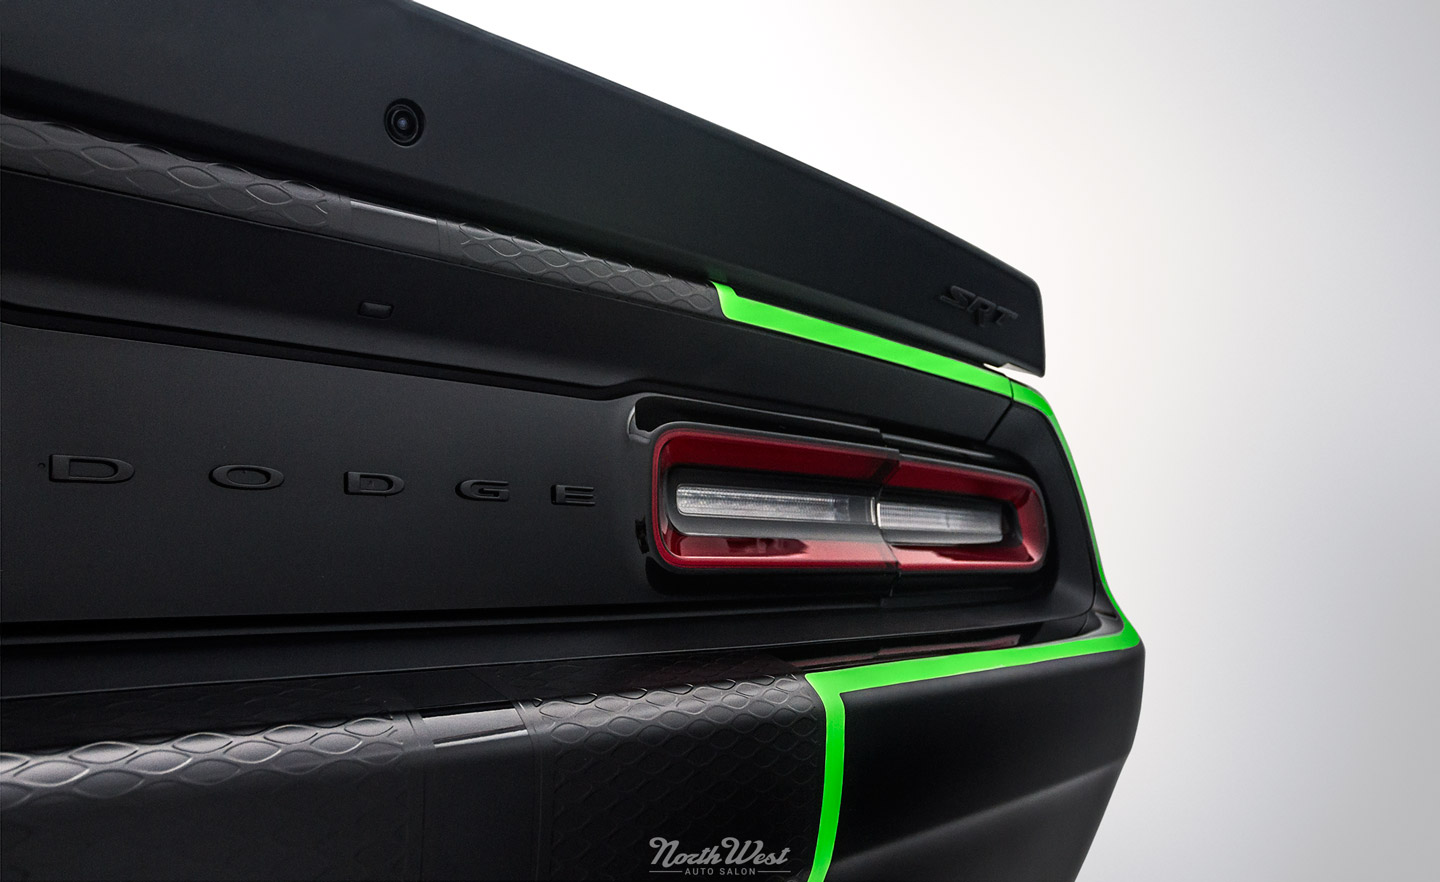 Dodge-Challenger-SRT-Hellcat-new-car-detail-ceramic-pro-custom-neon-green-stripes-rear-qtr-close.jpg